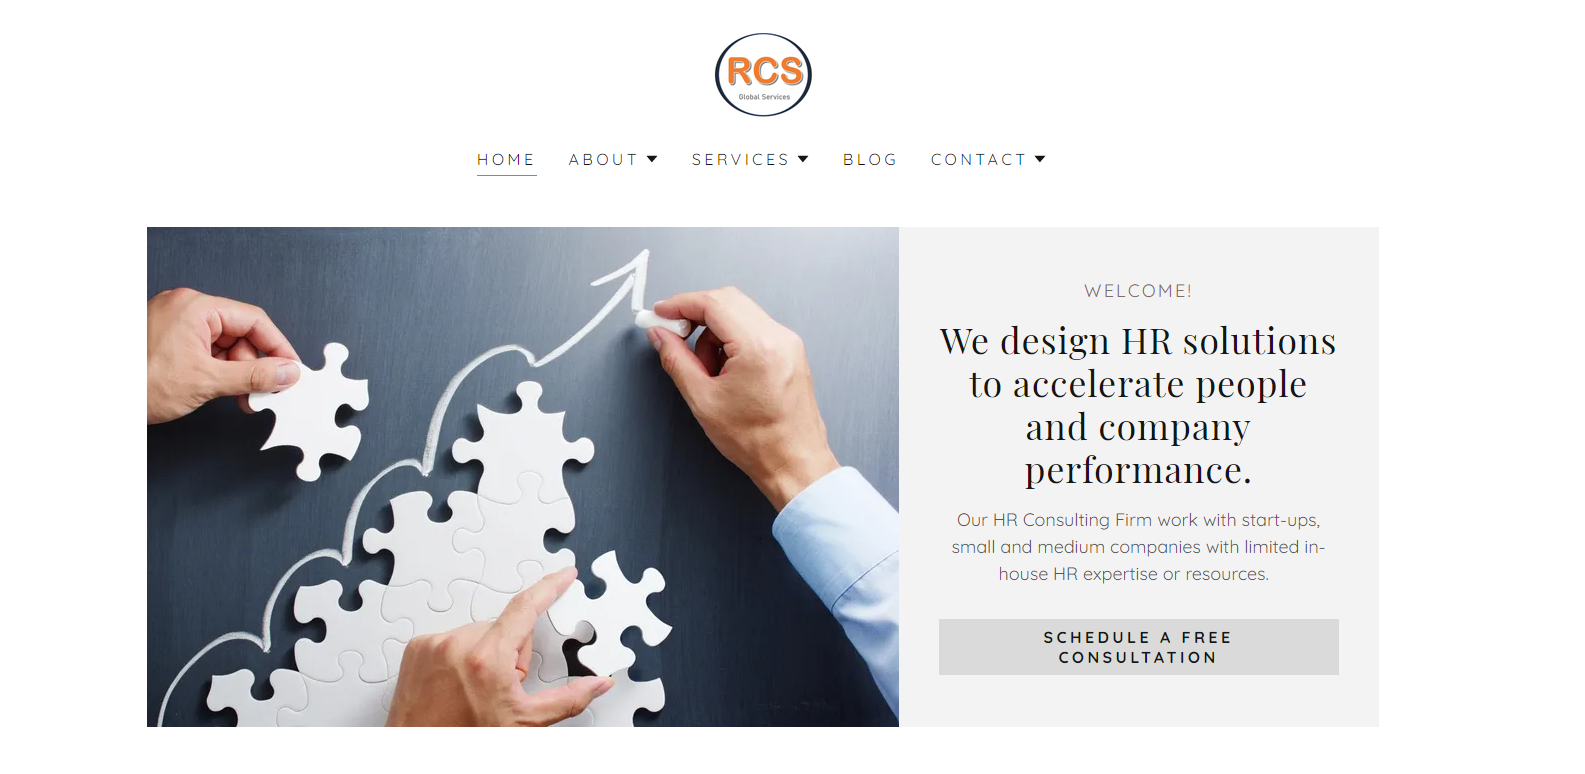 RCS Global Services